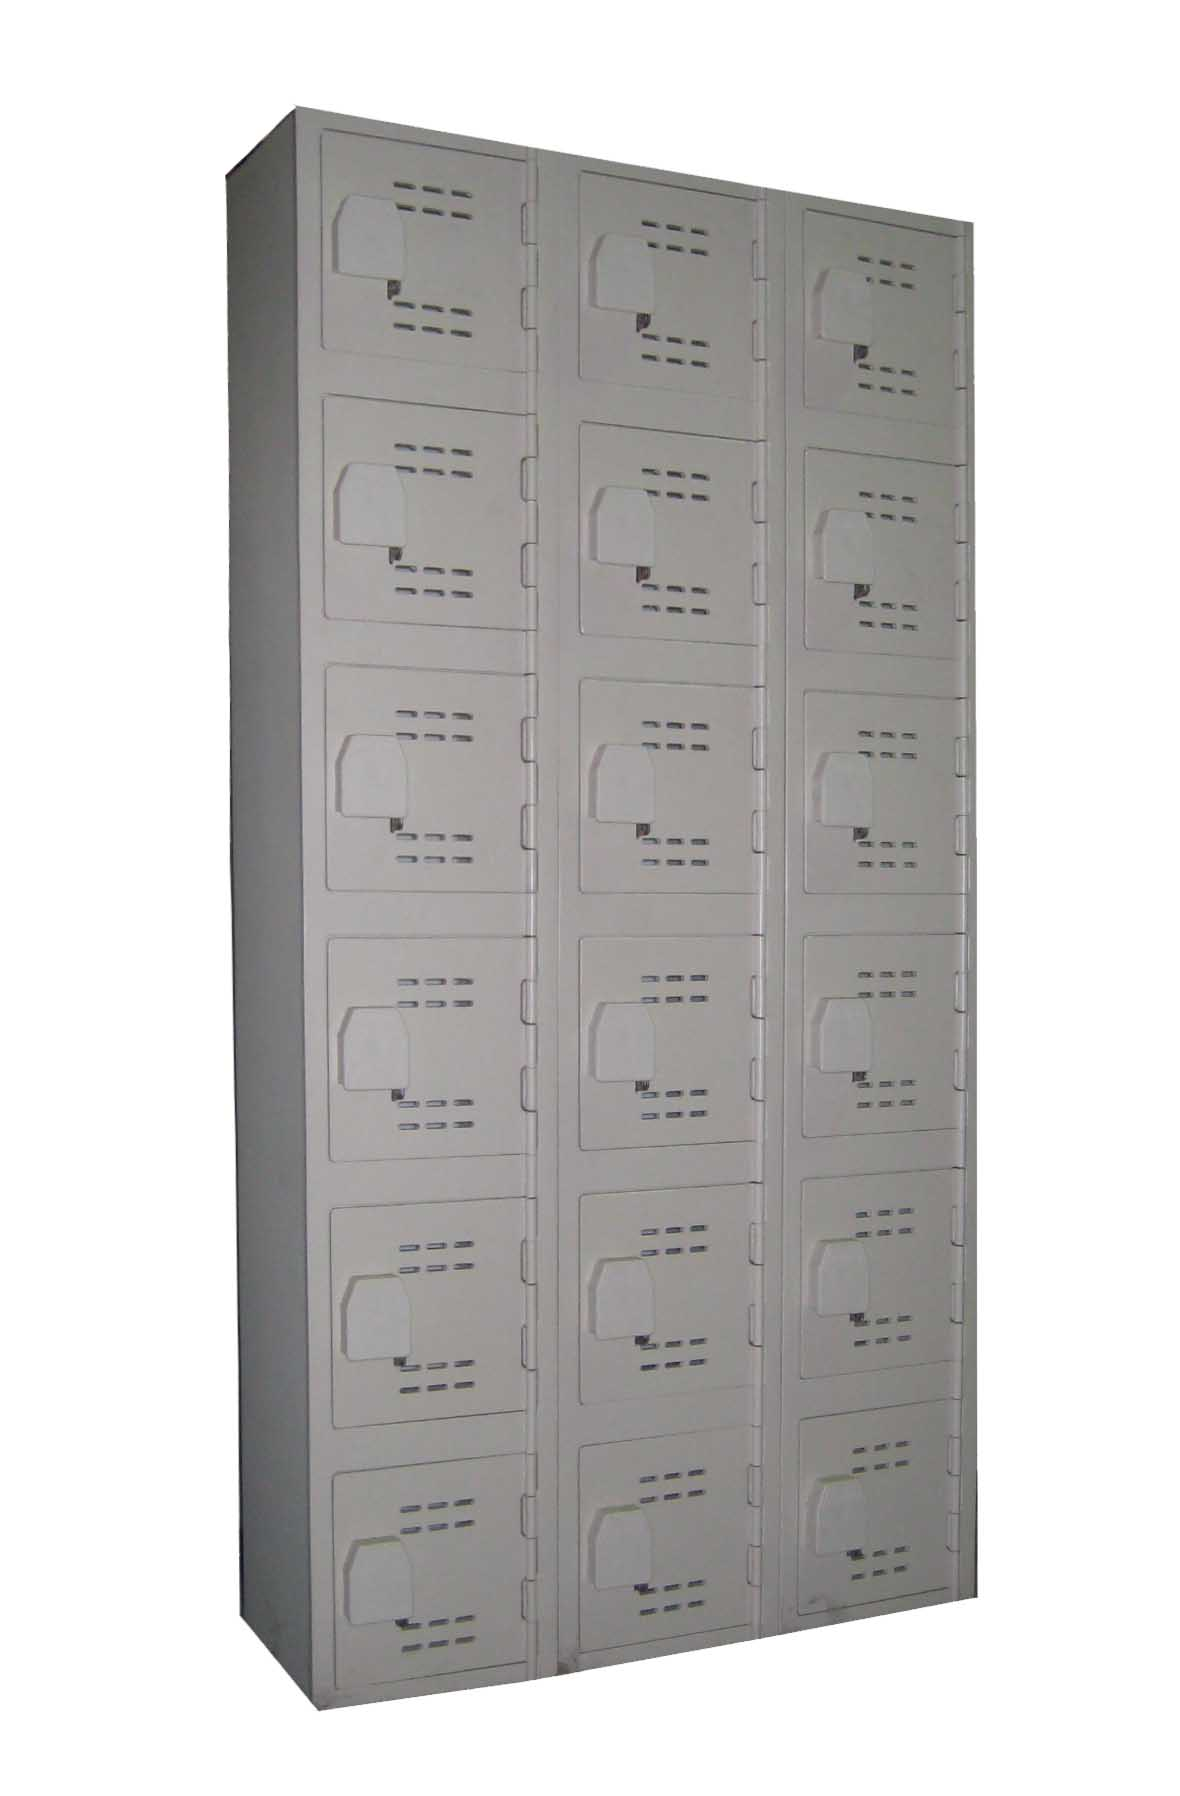 Plastic Box Lockersimage 1